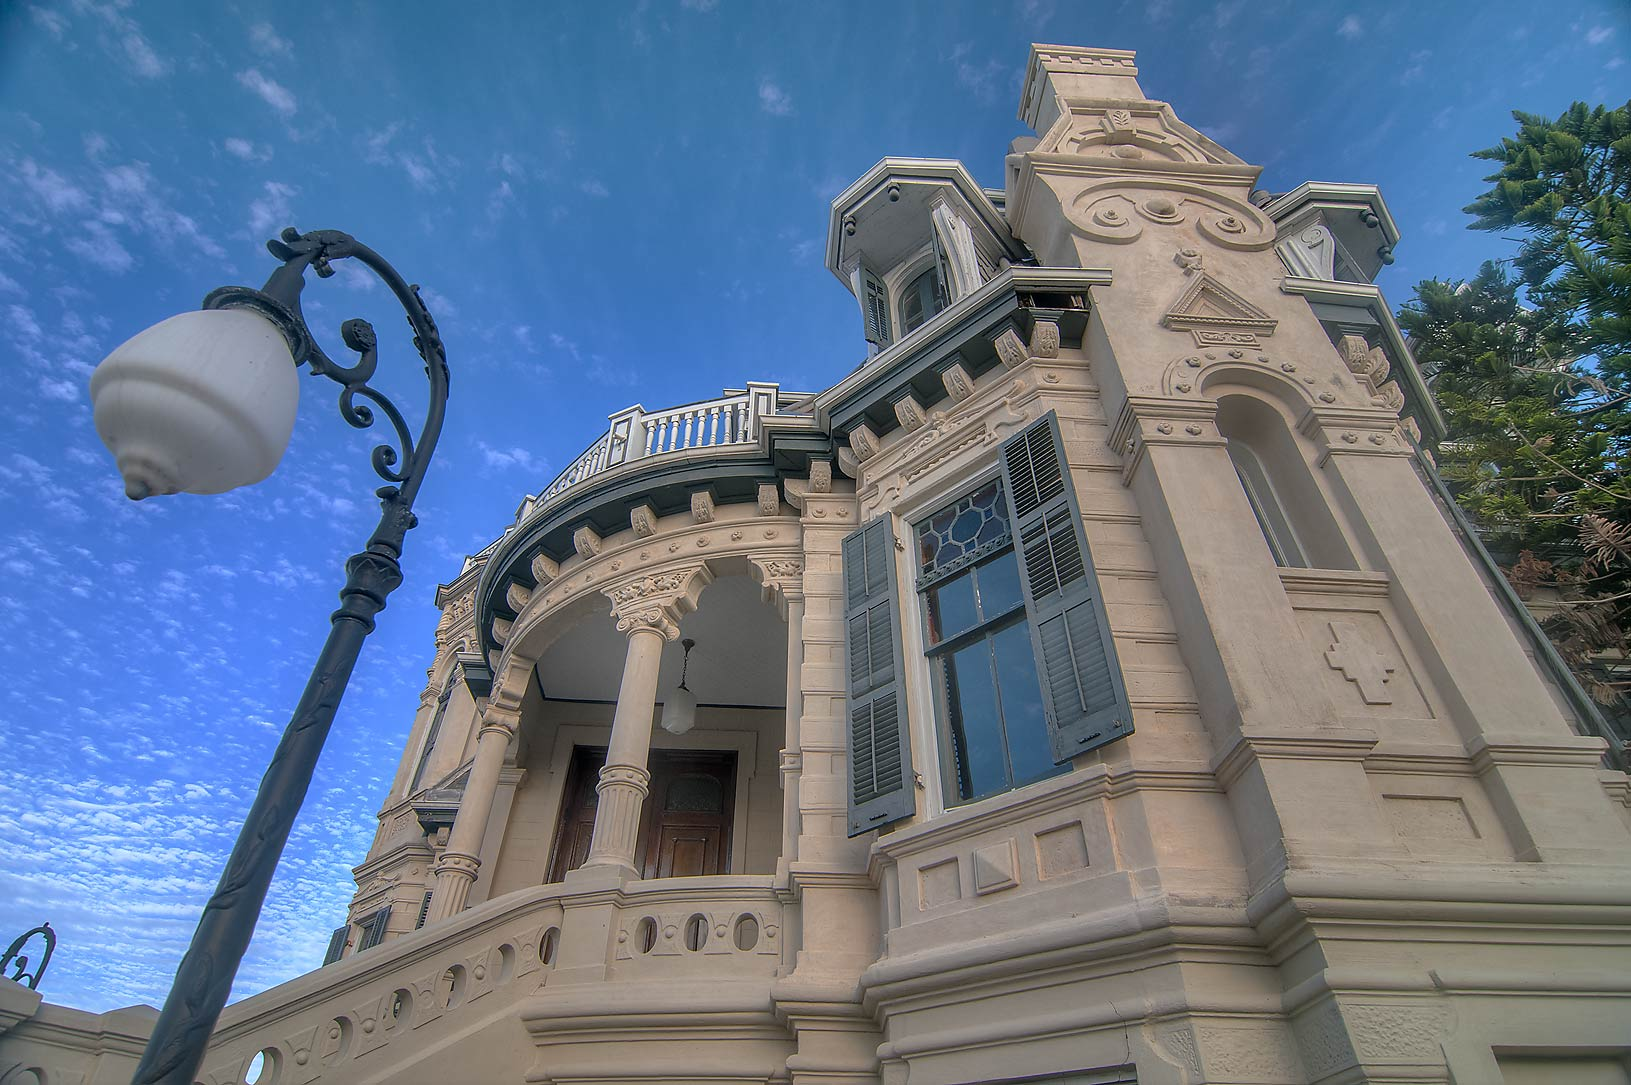 Fragment of Trube Castle (1890) at 1627 Sealy St., a corner of 17th St.. Galveston, Texas